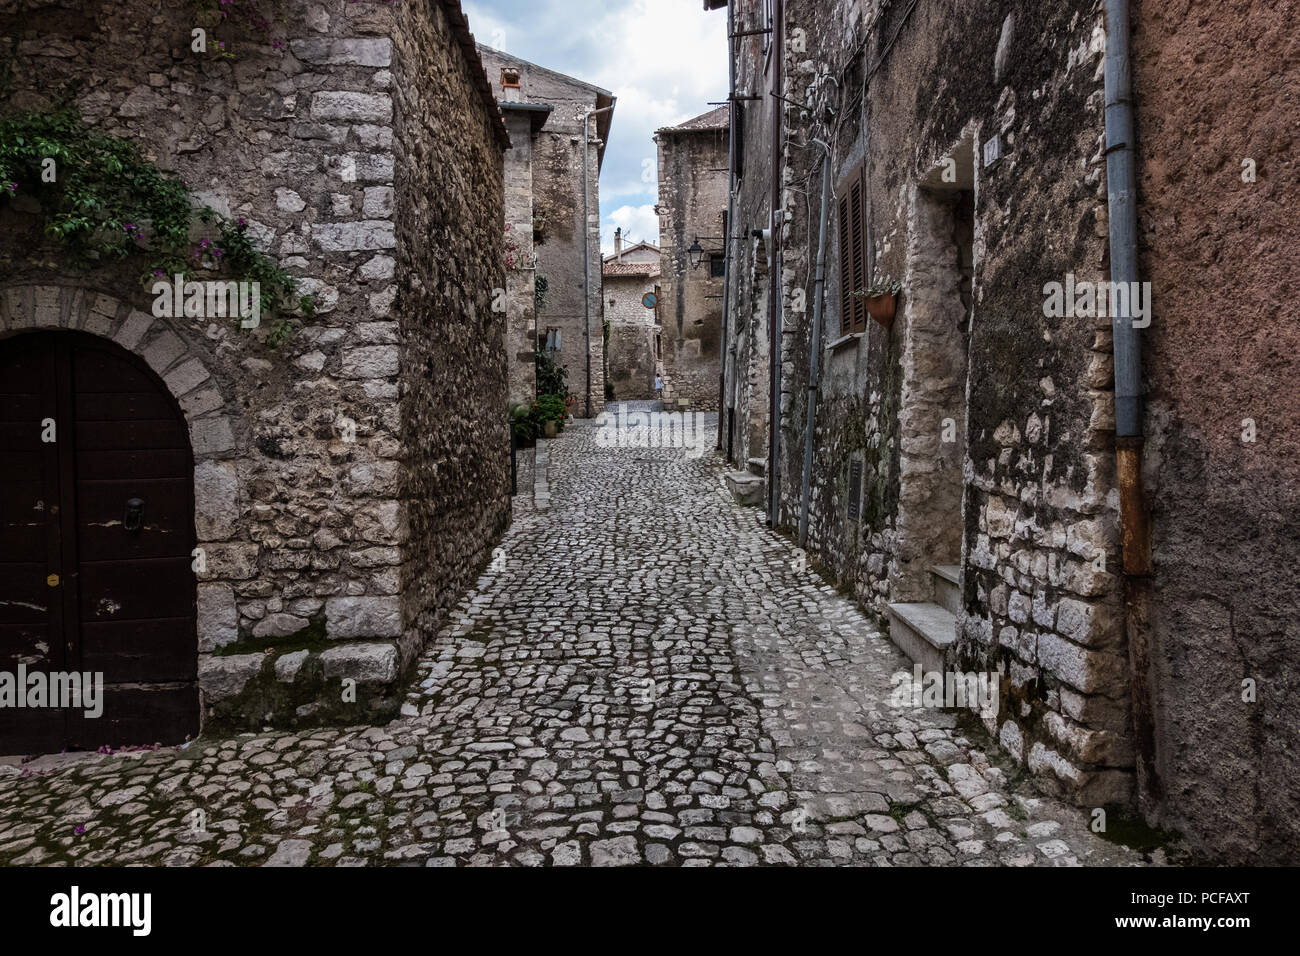 Stone timeworn walls of an old town. - Stock Image